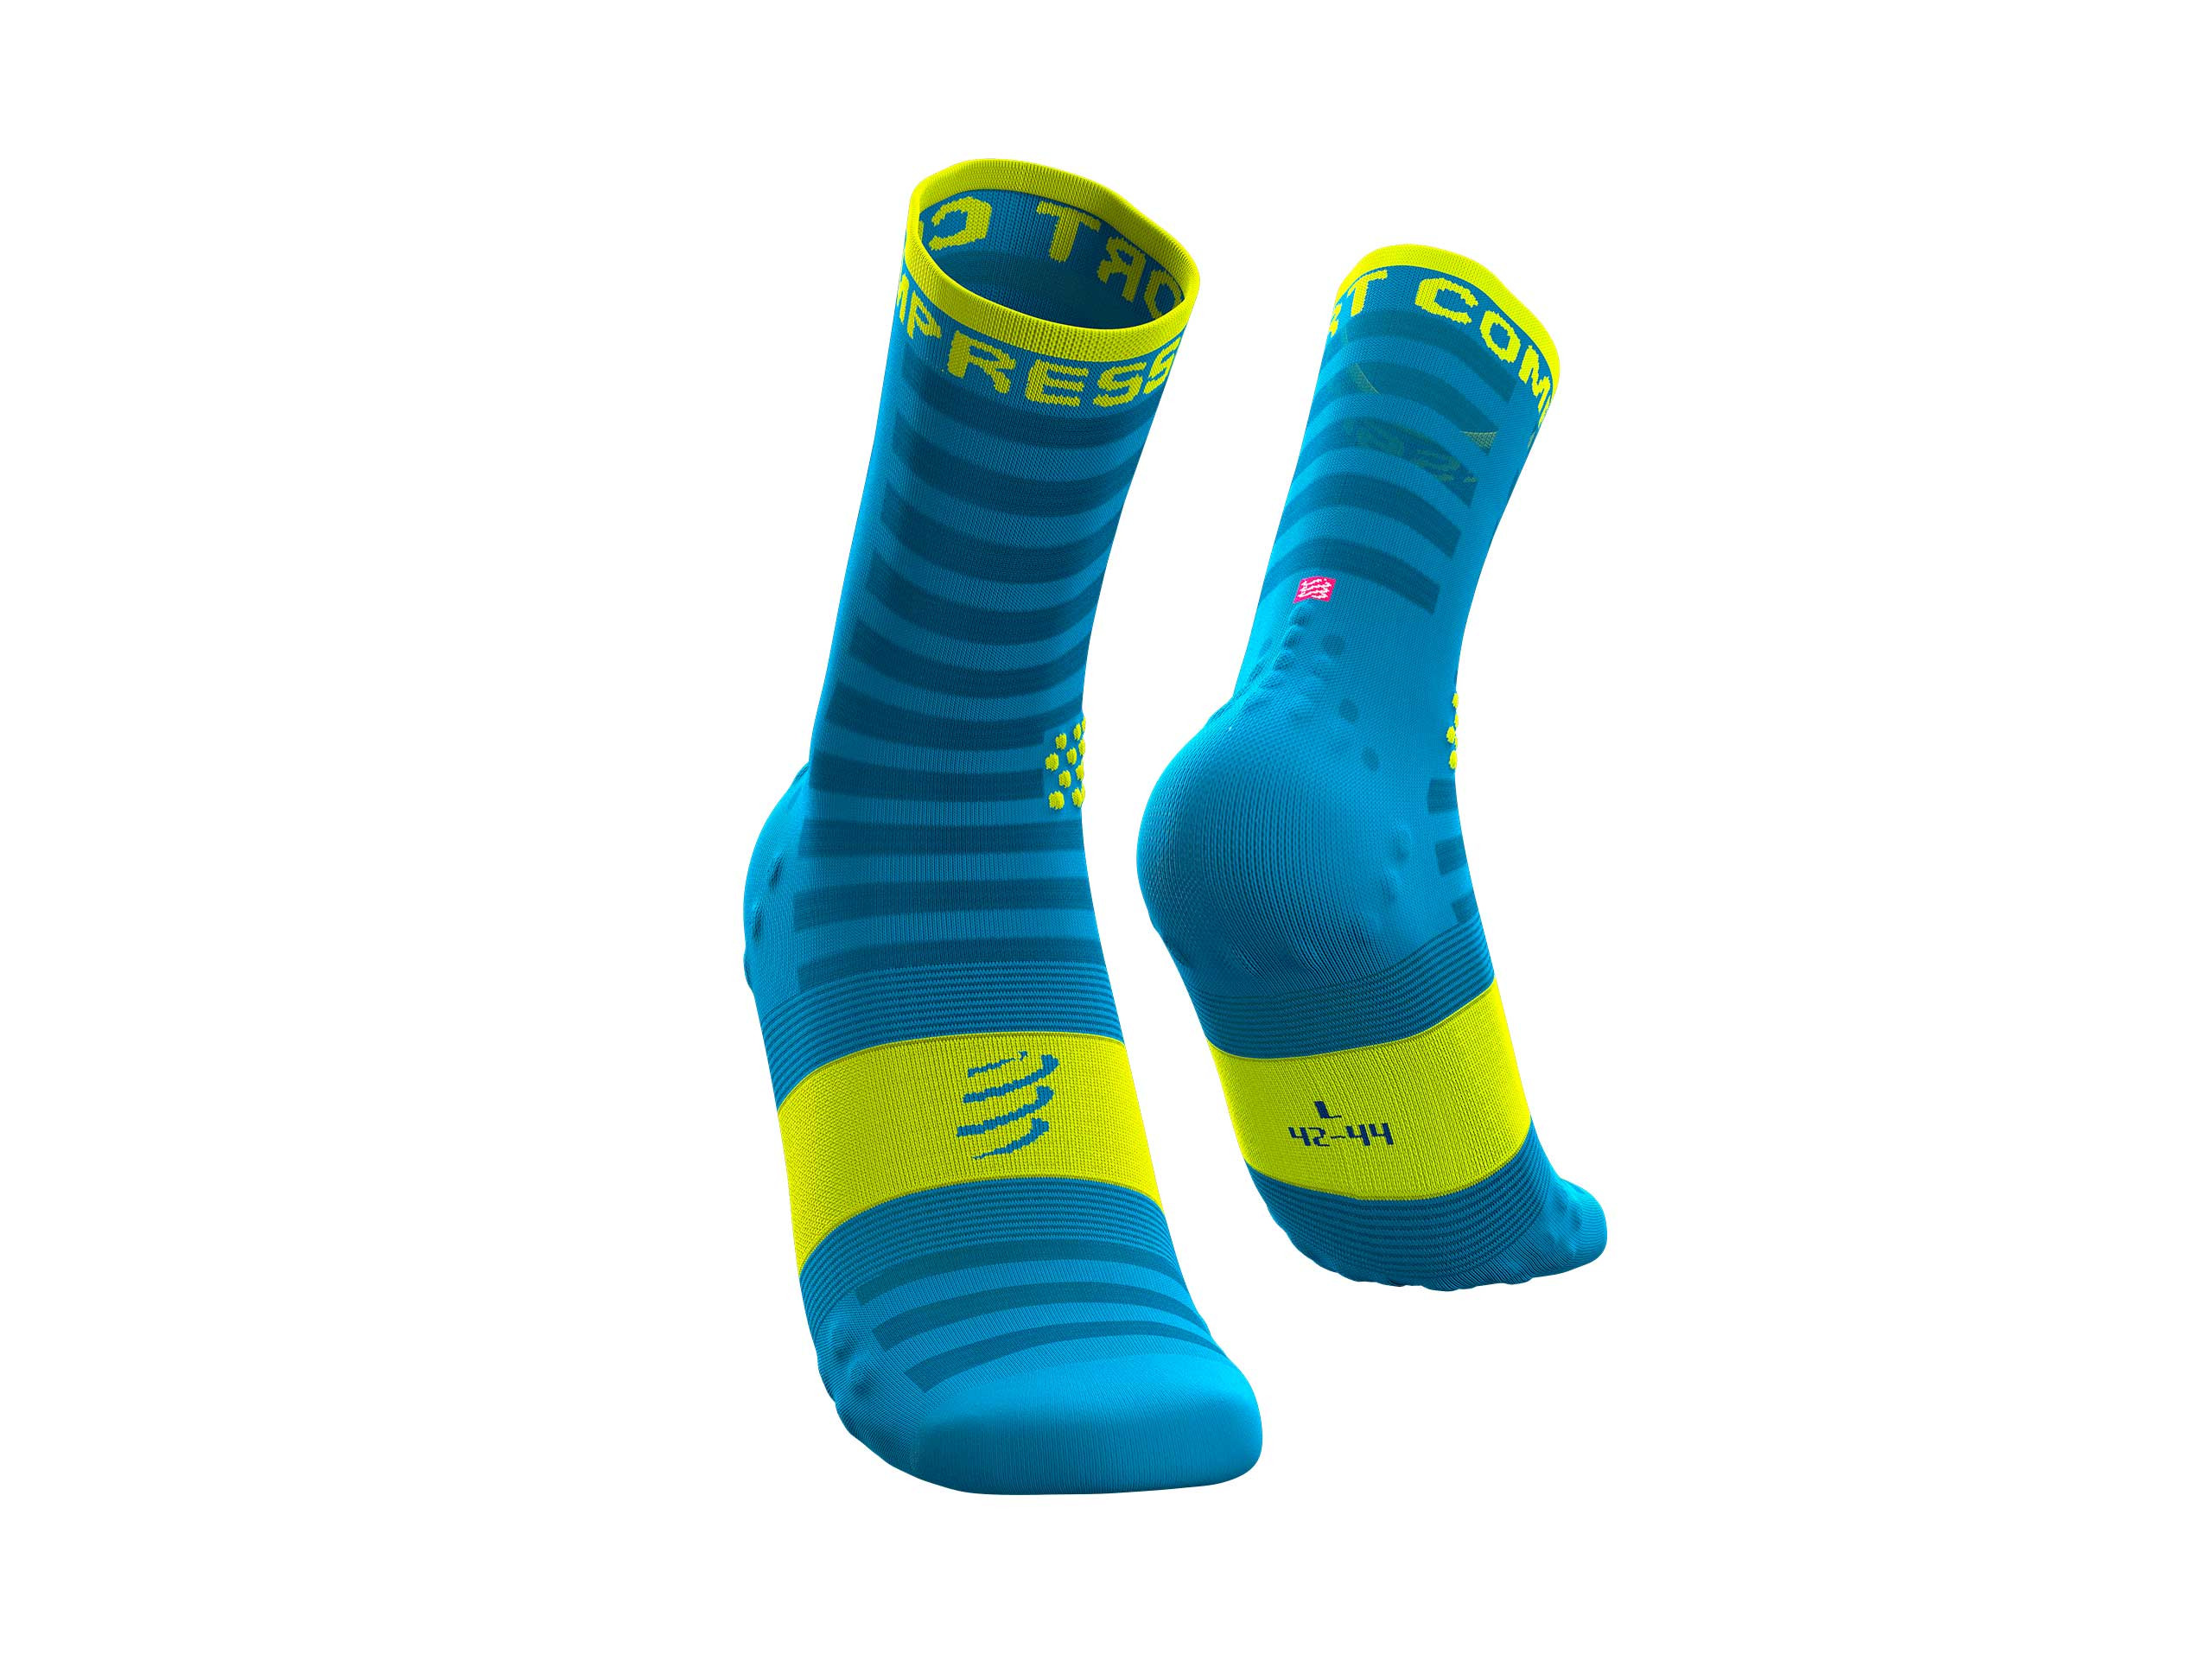 Pro Racing Socks v3.0 Ultralight Run High bleu fluo